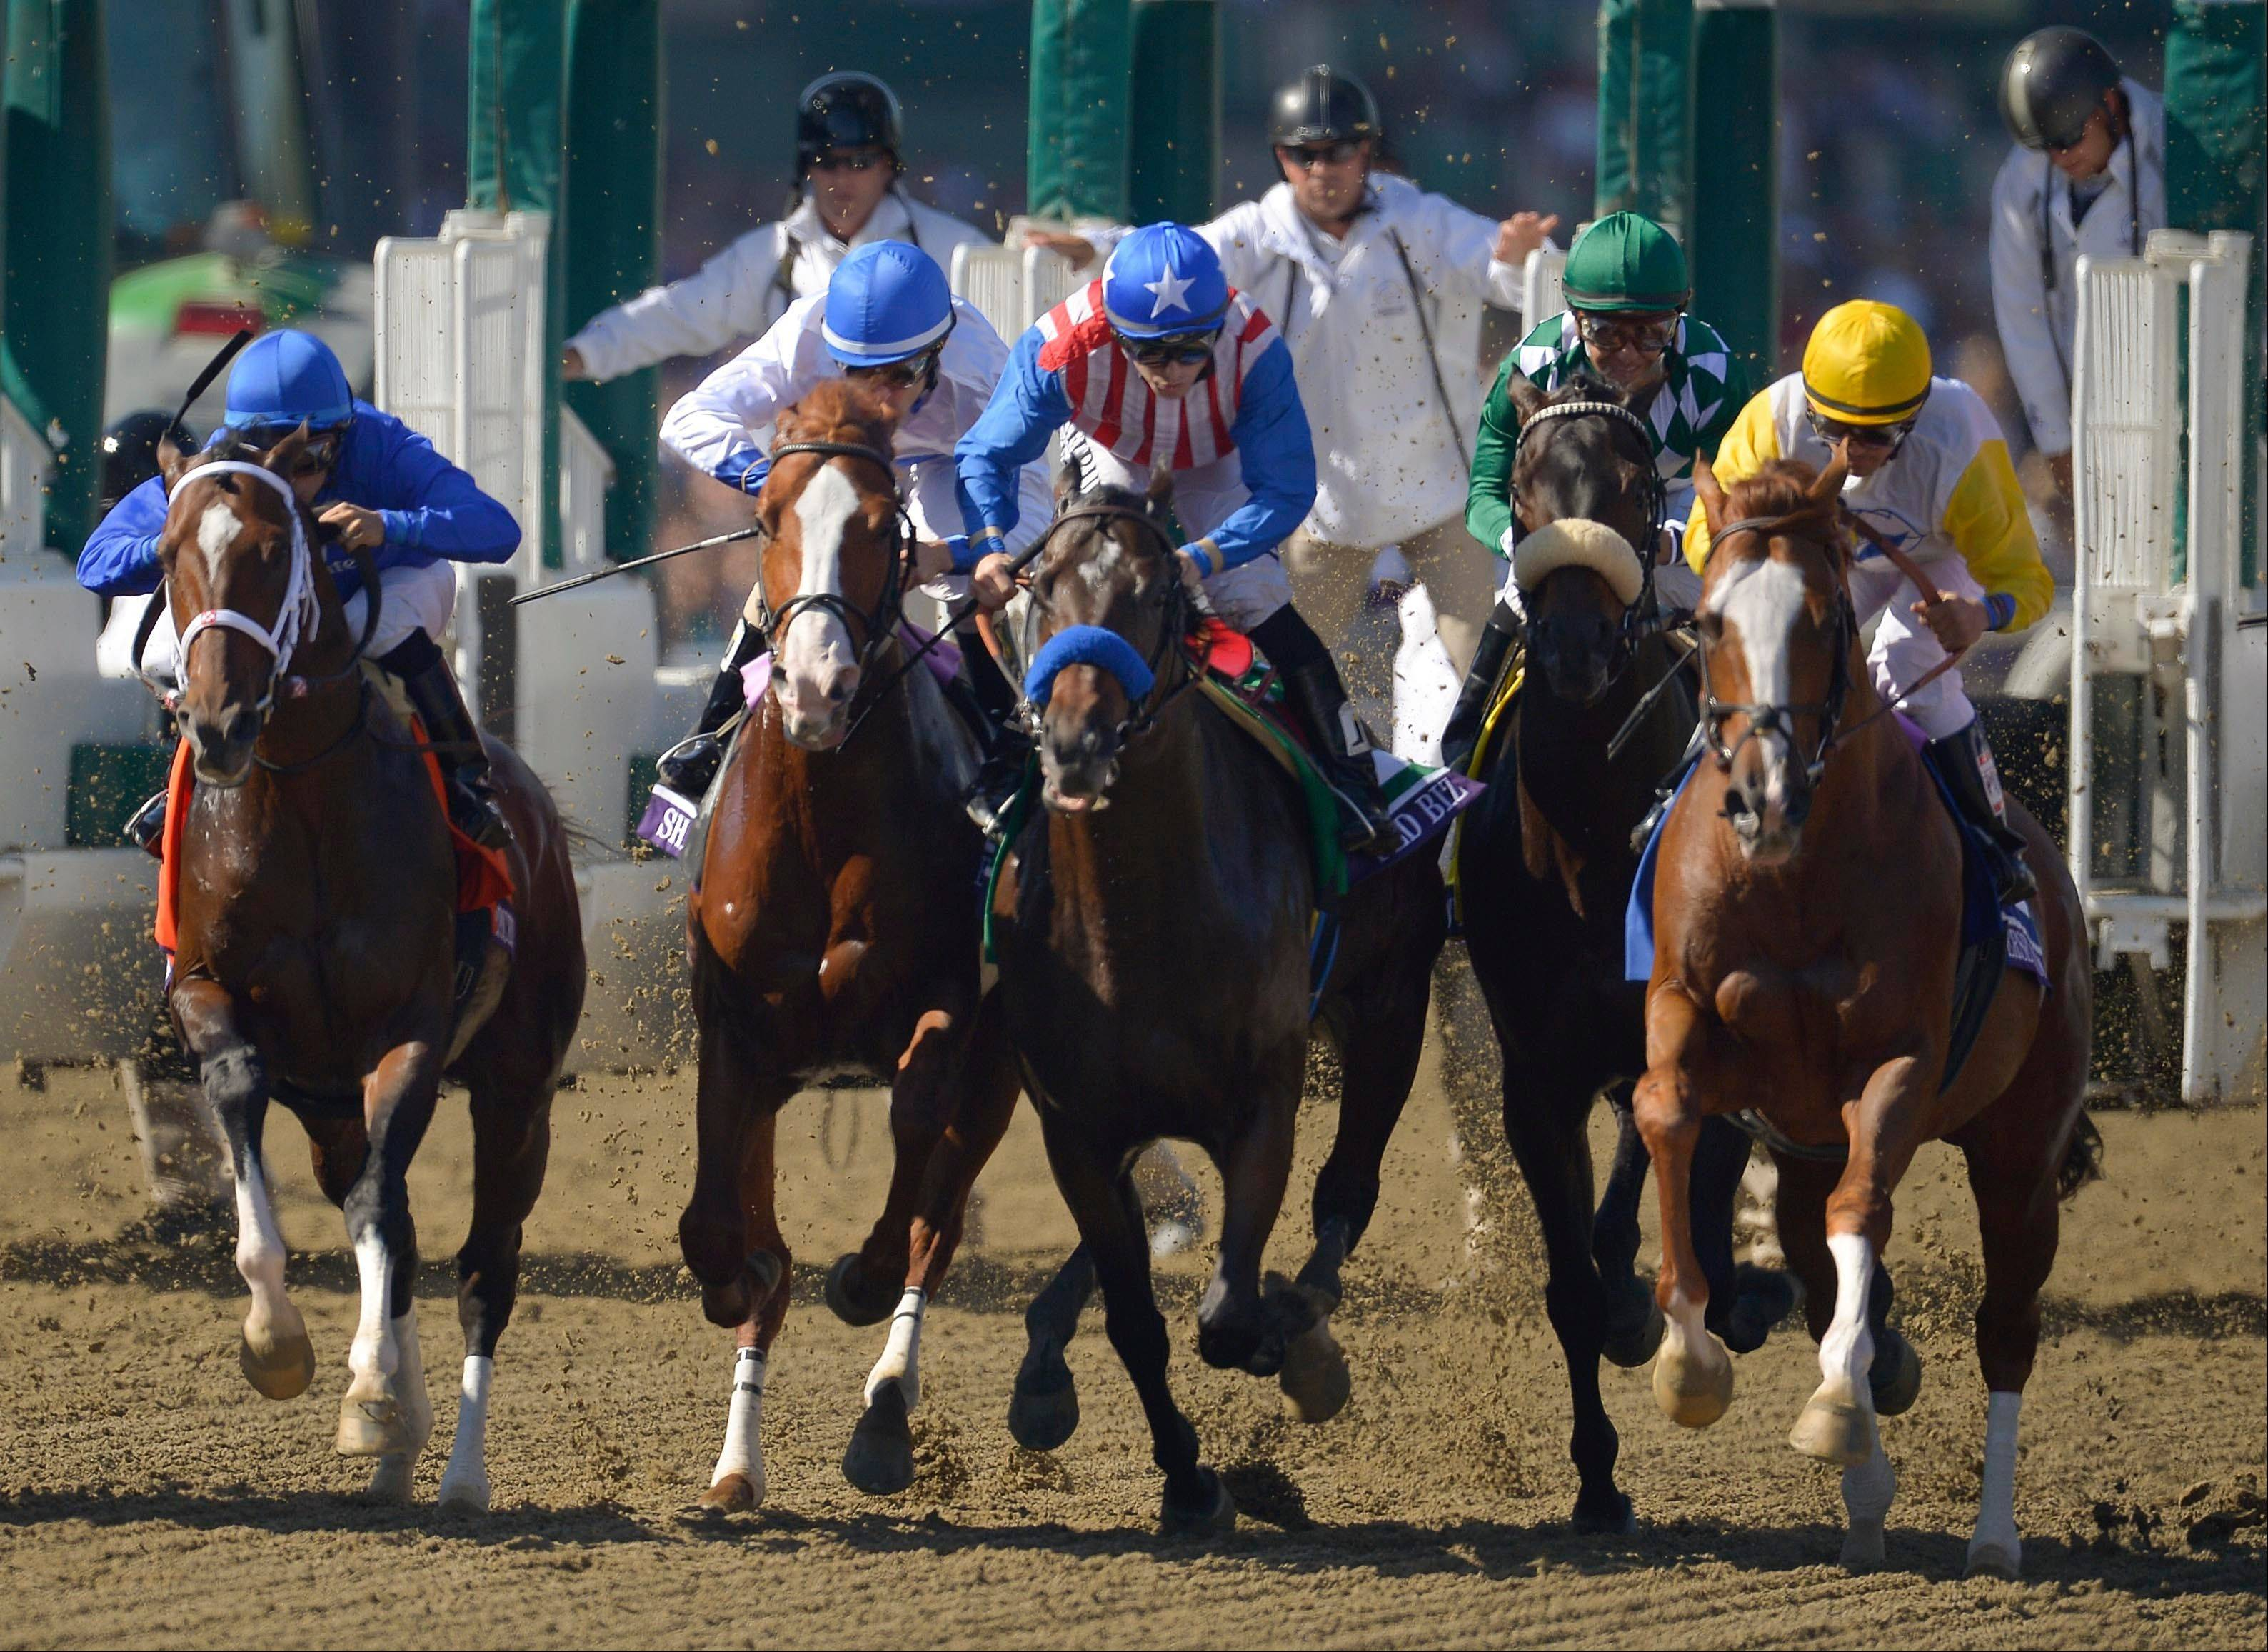 From left, Emcee, Shackleford, Fed Biz, John Scott and Jersey Town, break from the starting gate Saturday in the Breeders' Cup Dirt Mile race at Santa Anita Park in Arcadia, Calif.